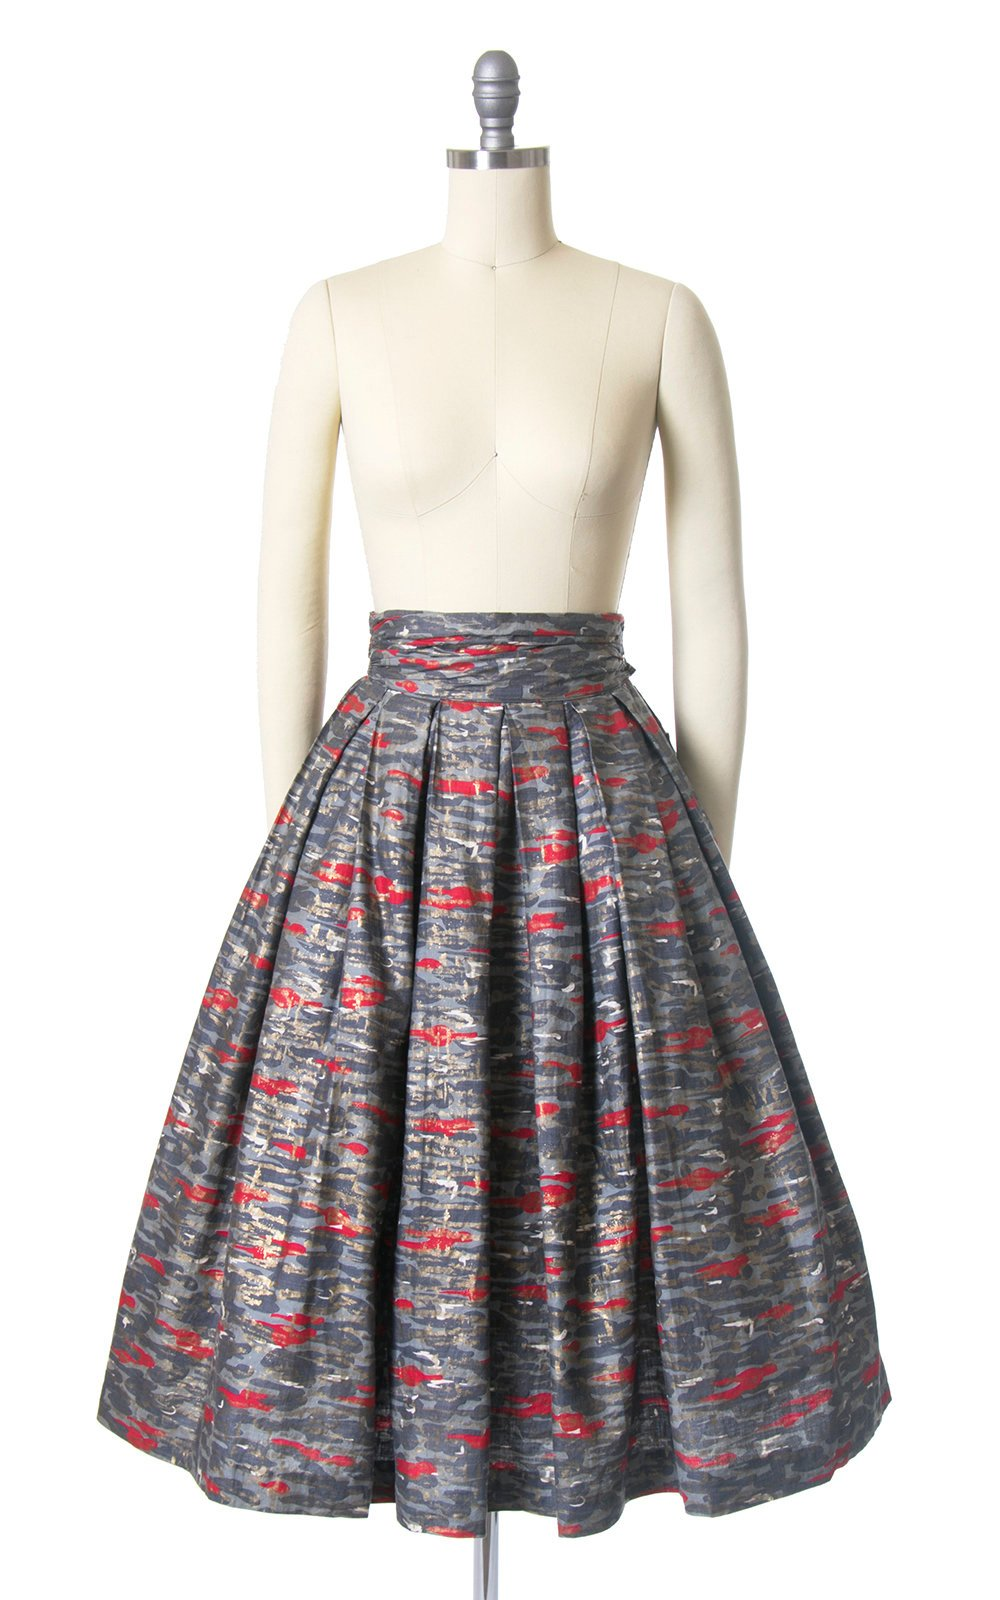 Vintage 1950s Skirt | 50s Metallic Gold Abstract Camouflage Cotton Grey Red Wide Cummerbund Waist Pleated Full Skirt (small)